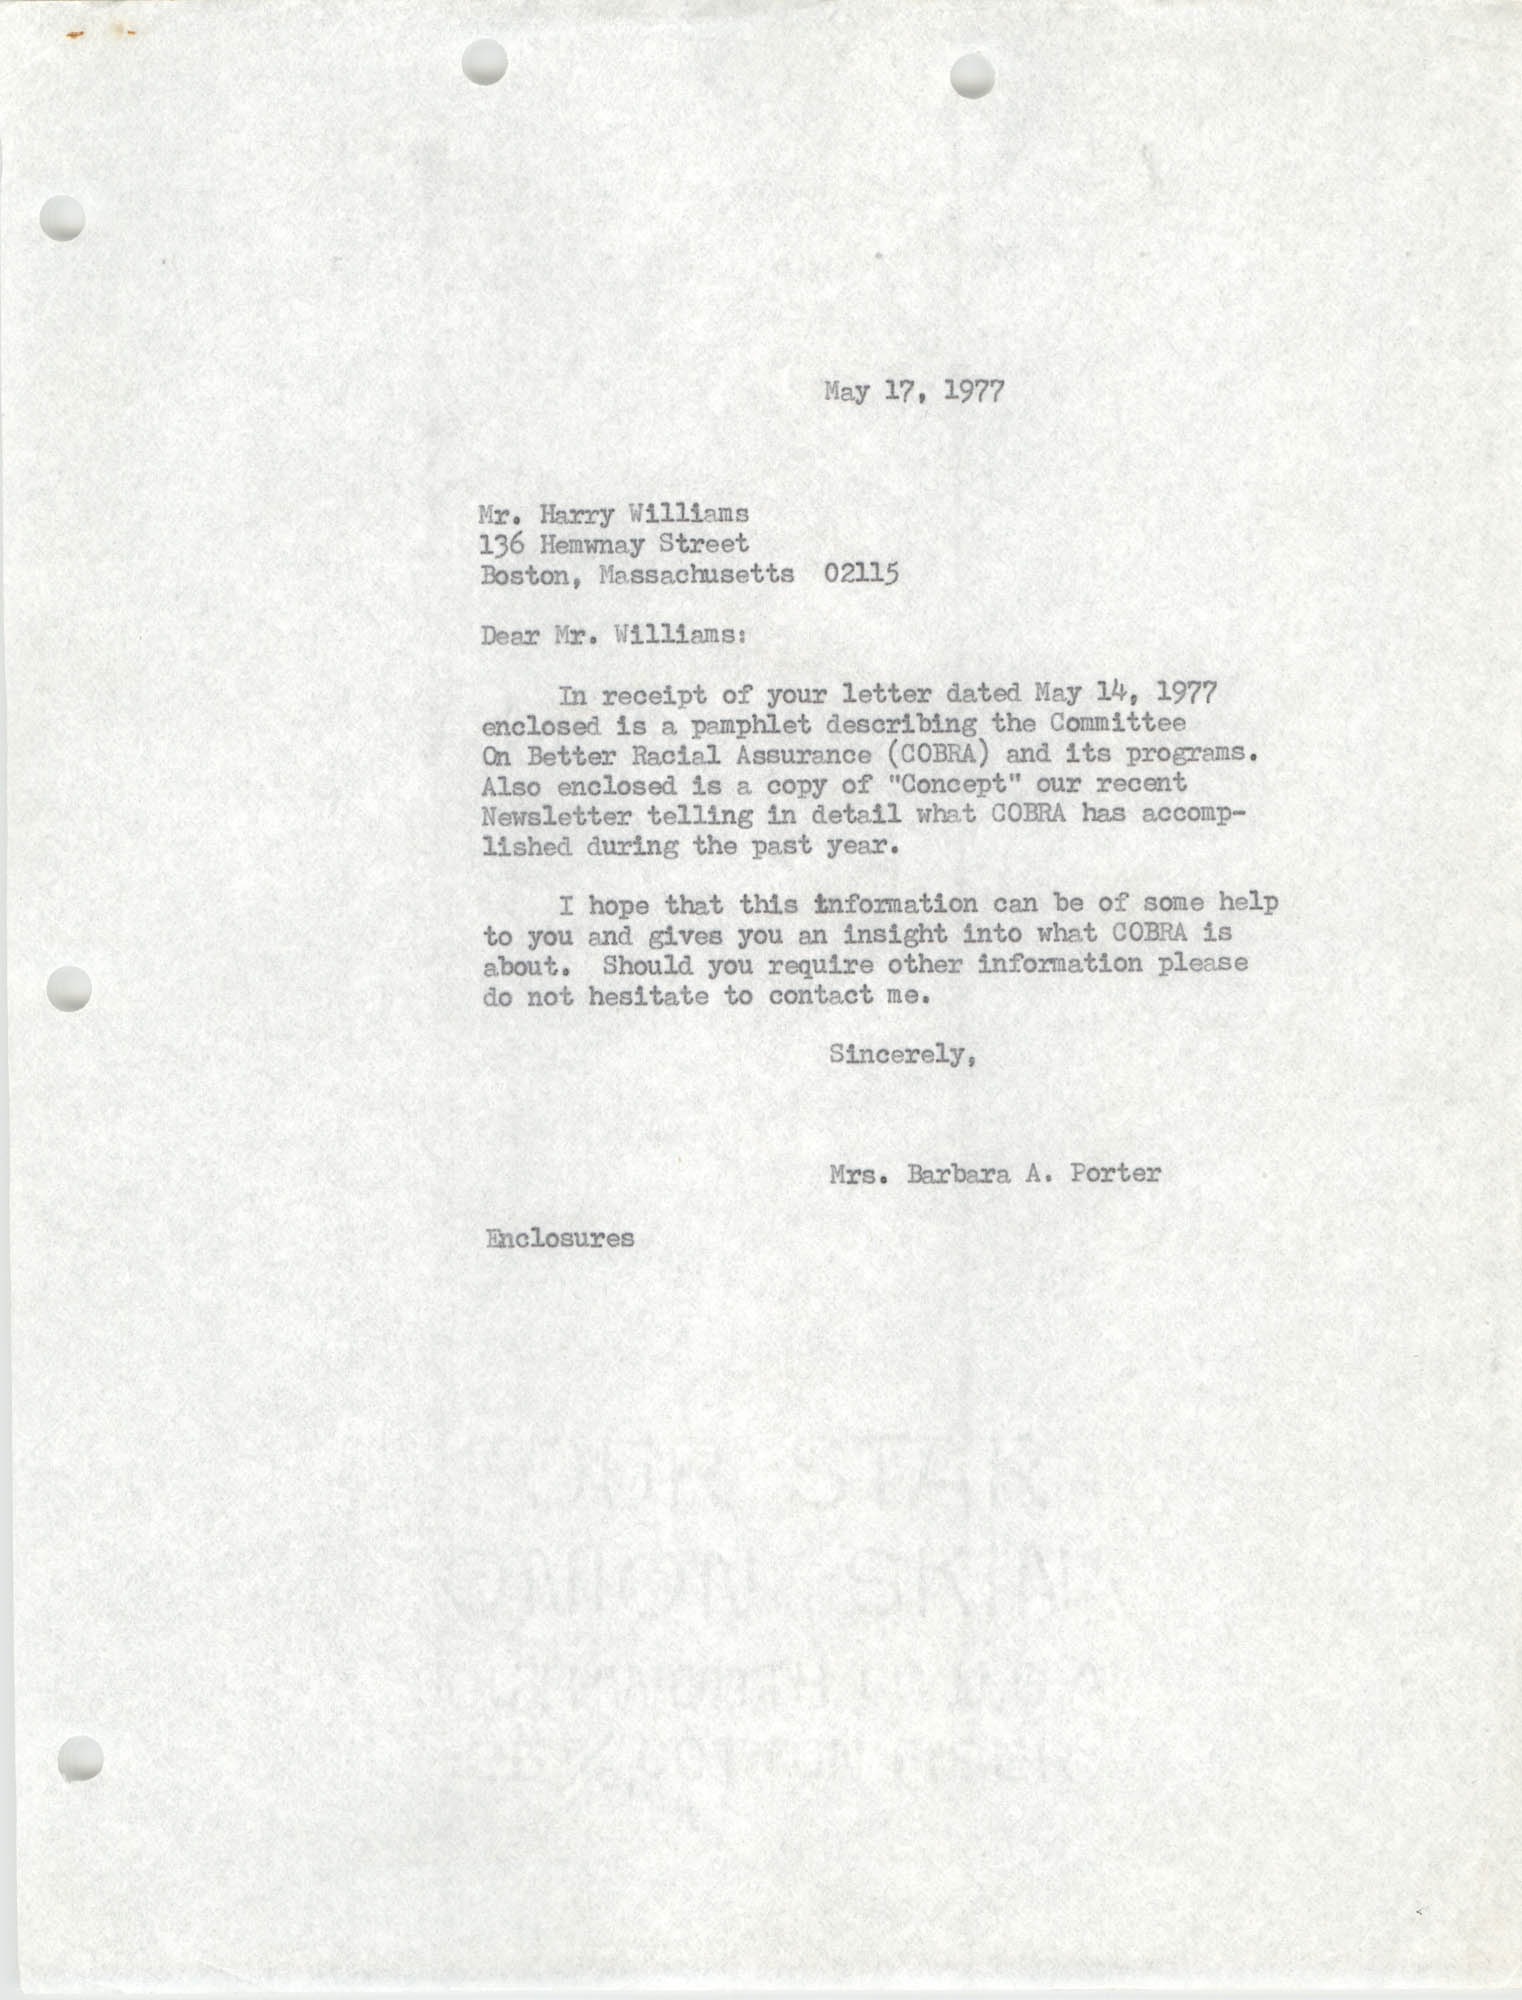 Letter from Barbara A. Porter to Harry Williams, May 17, 1977